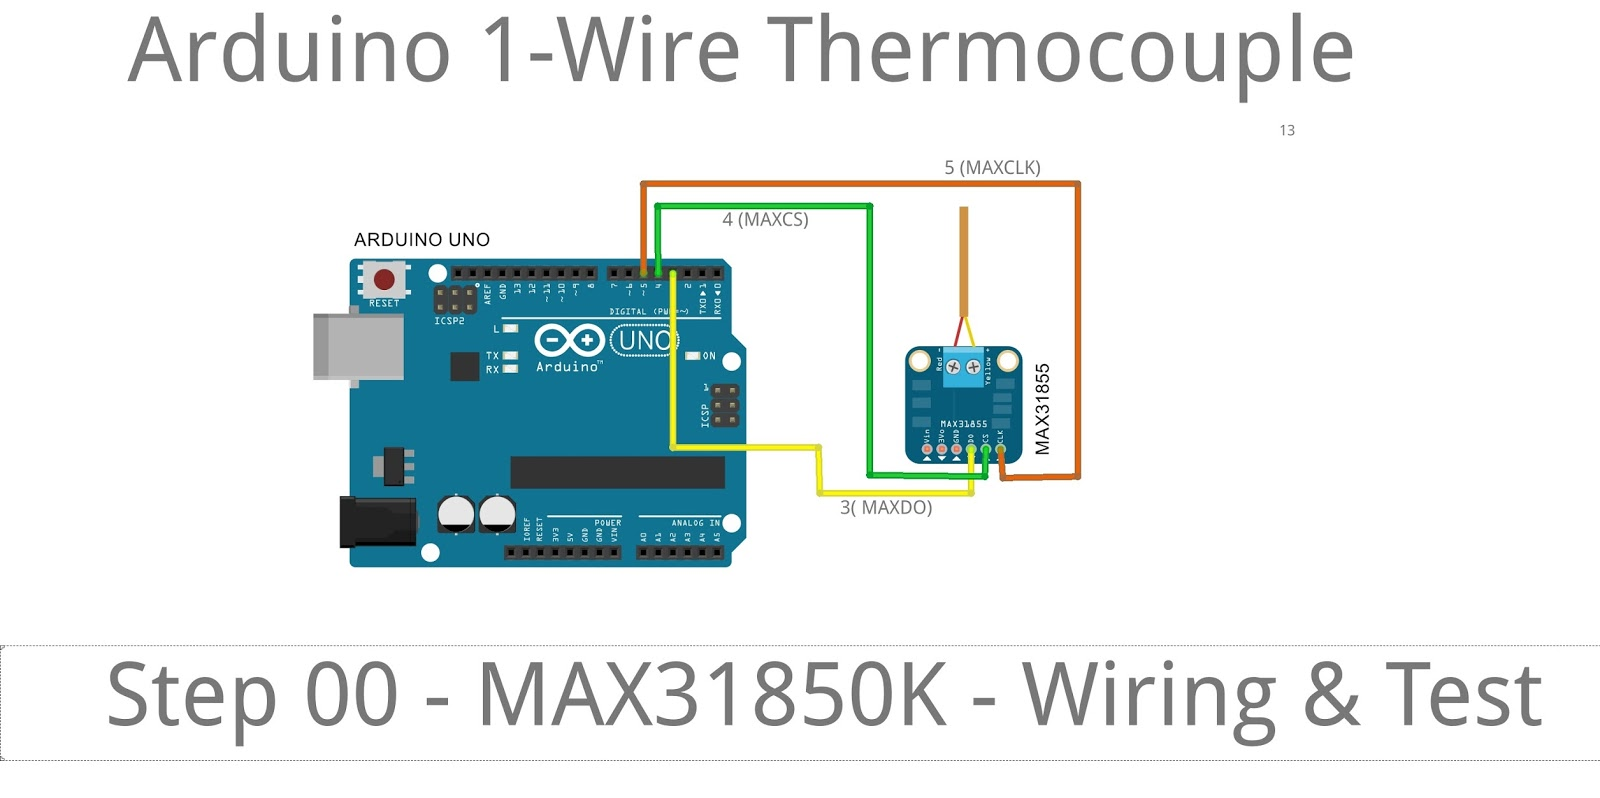 13 #arduSerie - Arduino 1-Wire Thermocouple in the kitchen ...